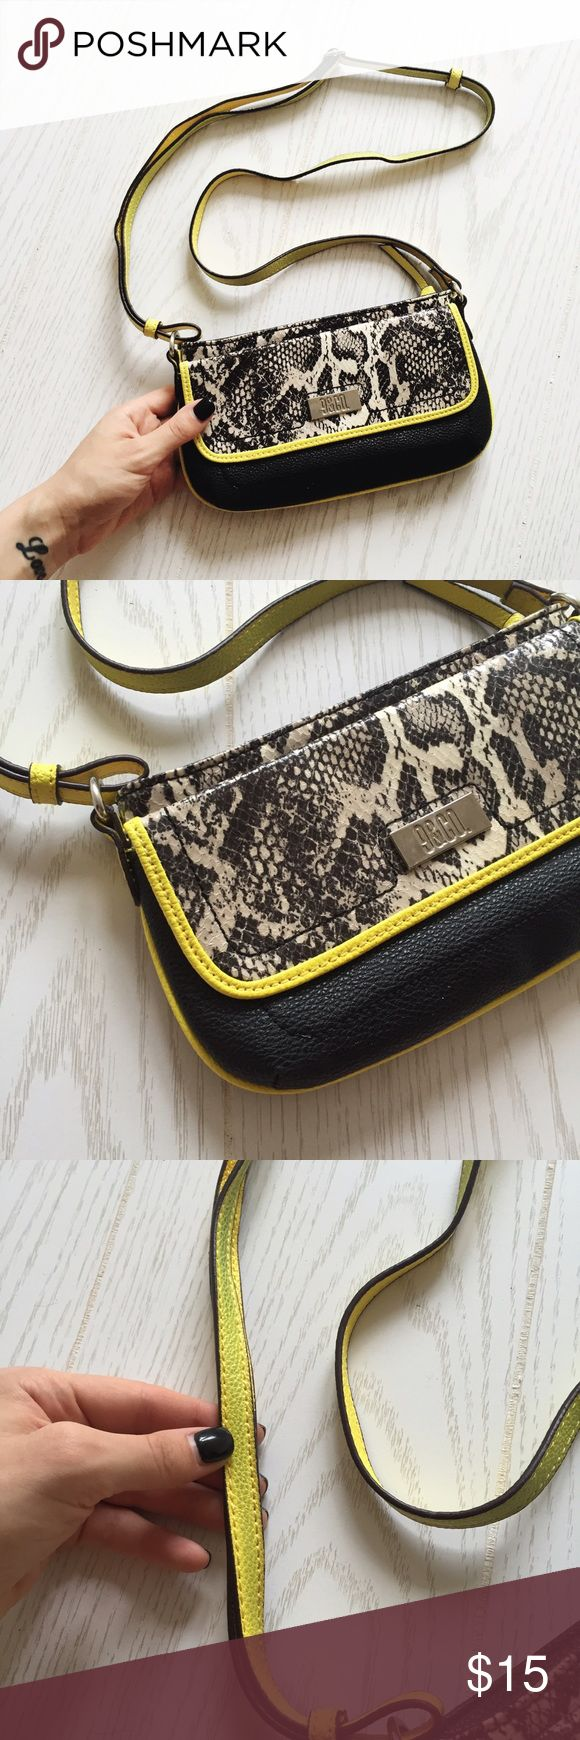 neon yellow, black, & snake skin crossbody purse neon yellow, black, & snake skin crossbody purse. perfect for a night out. only worn a couple of times. some dye transfer on the inside of the strap. can't be seen when wearing. so cute! jcpenney Bags Crossbody Bags